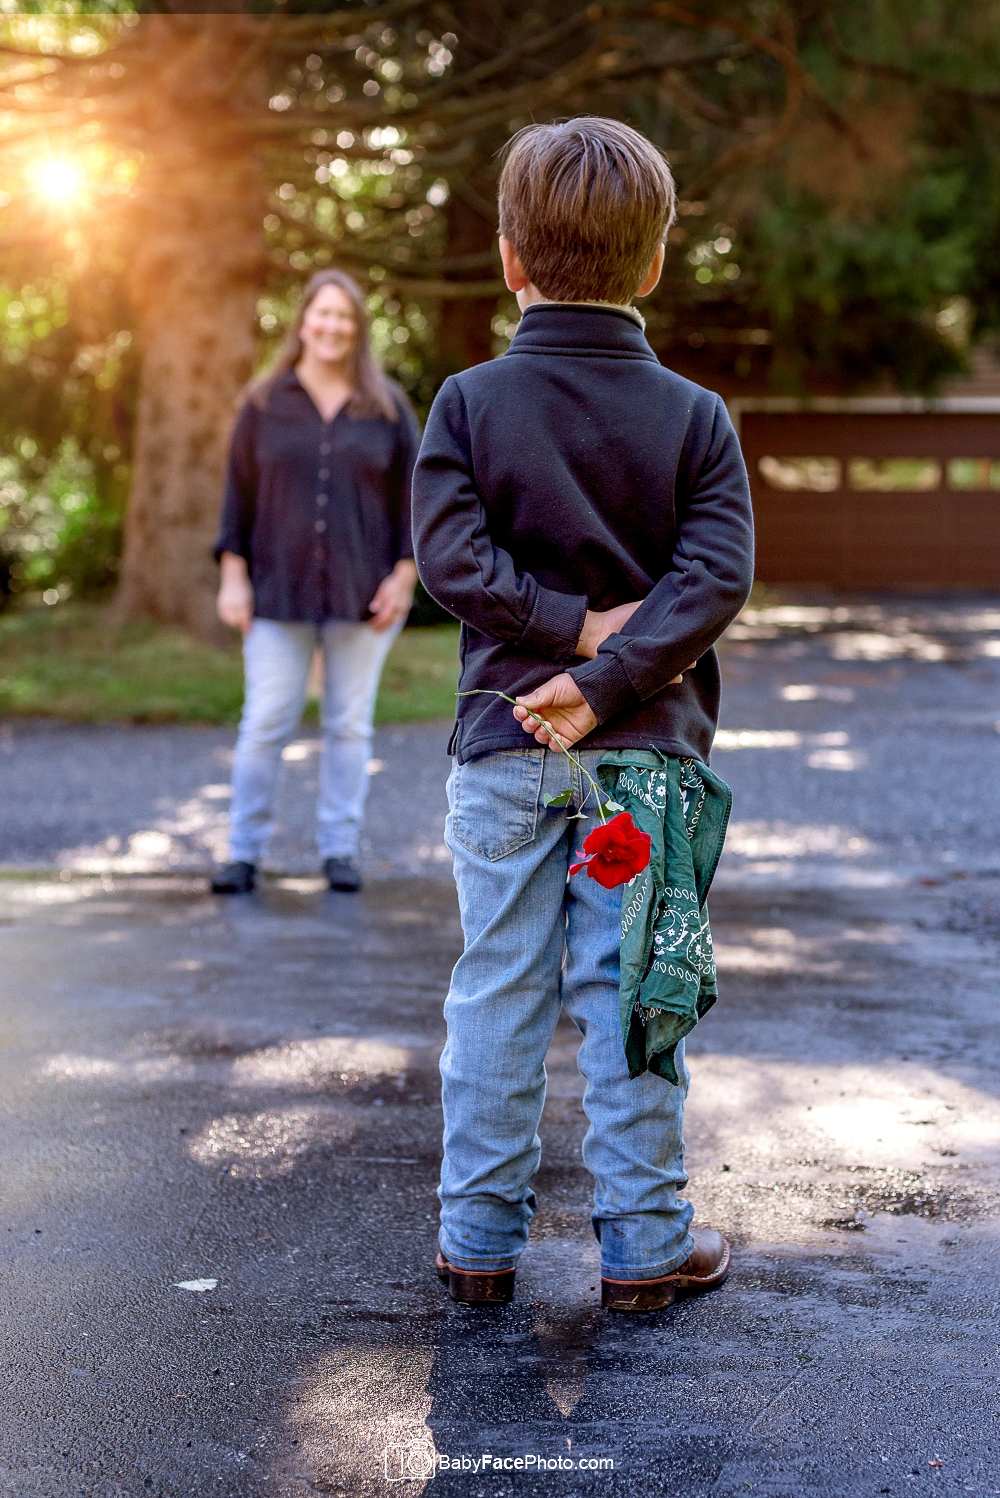 boy hiding rose behind his back for mom